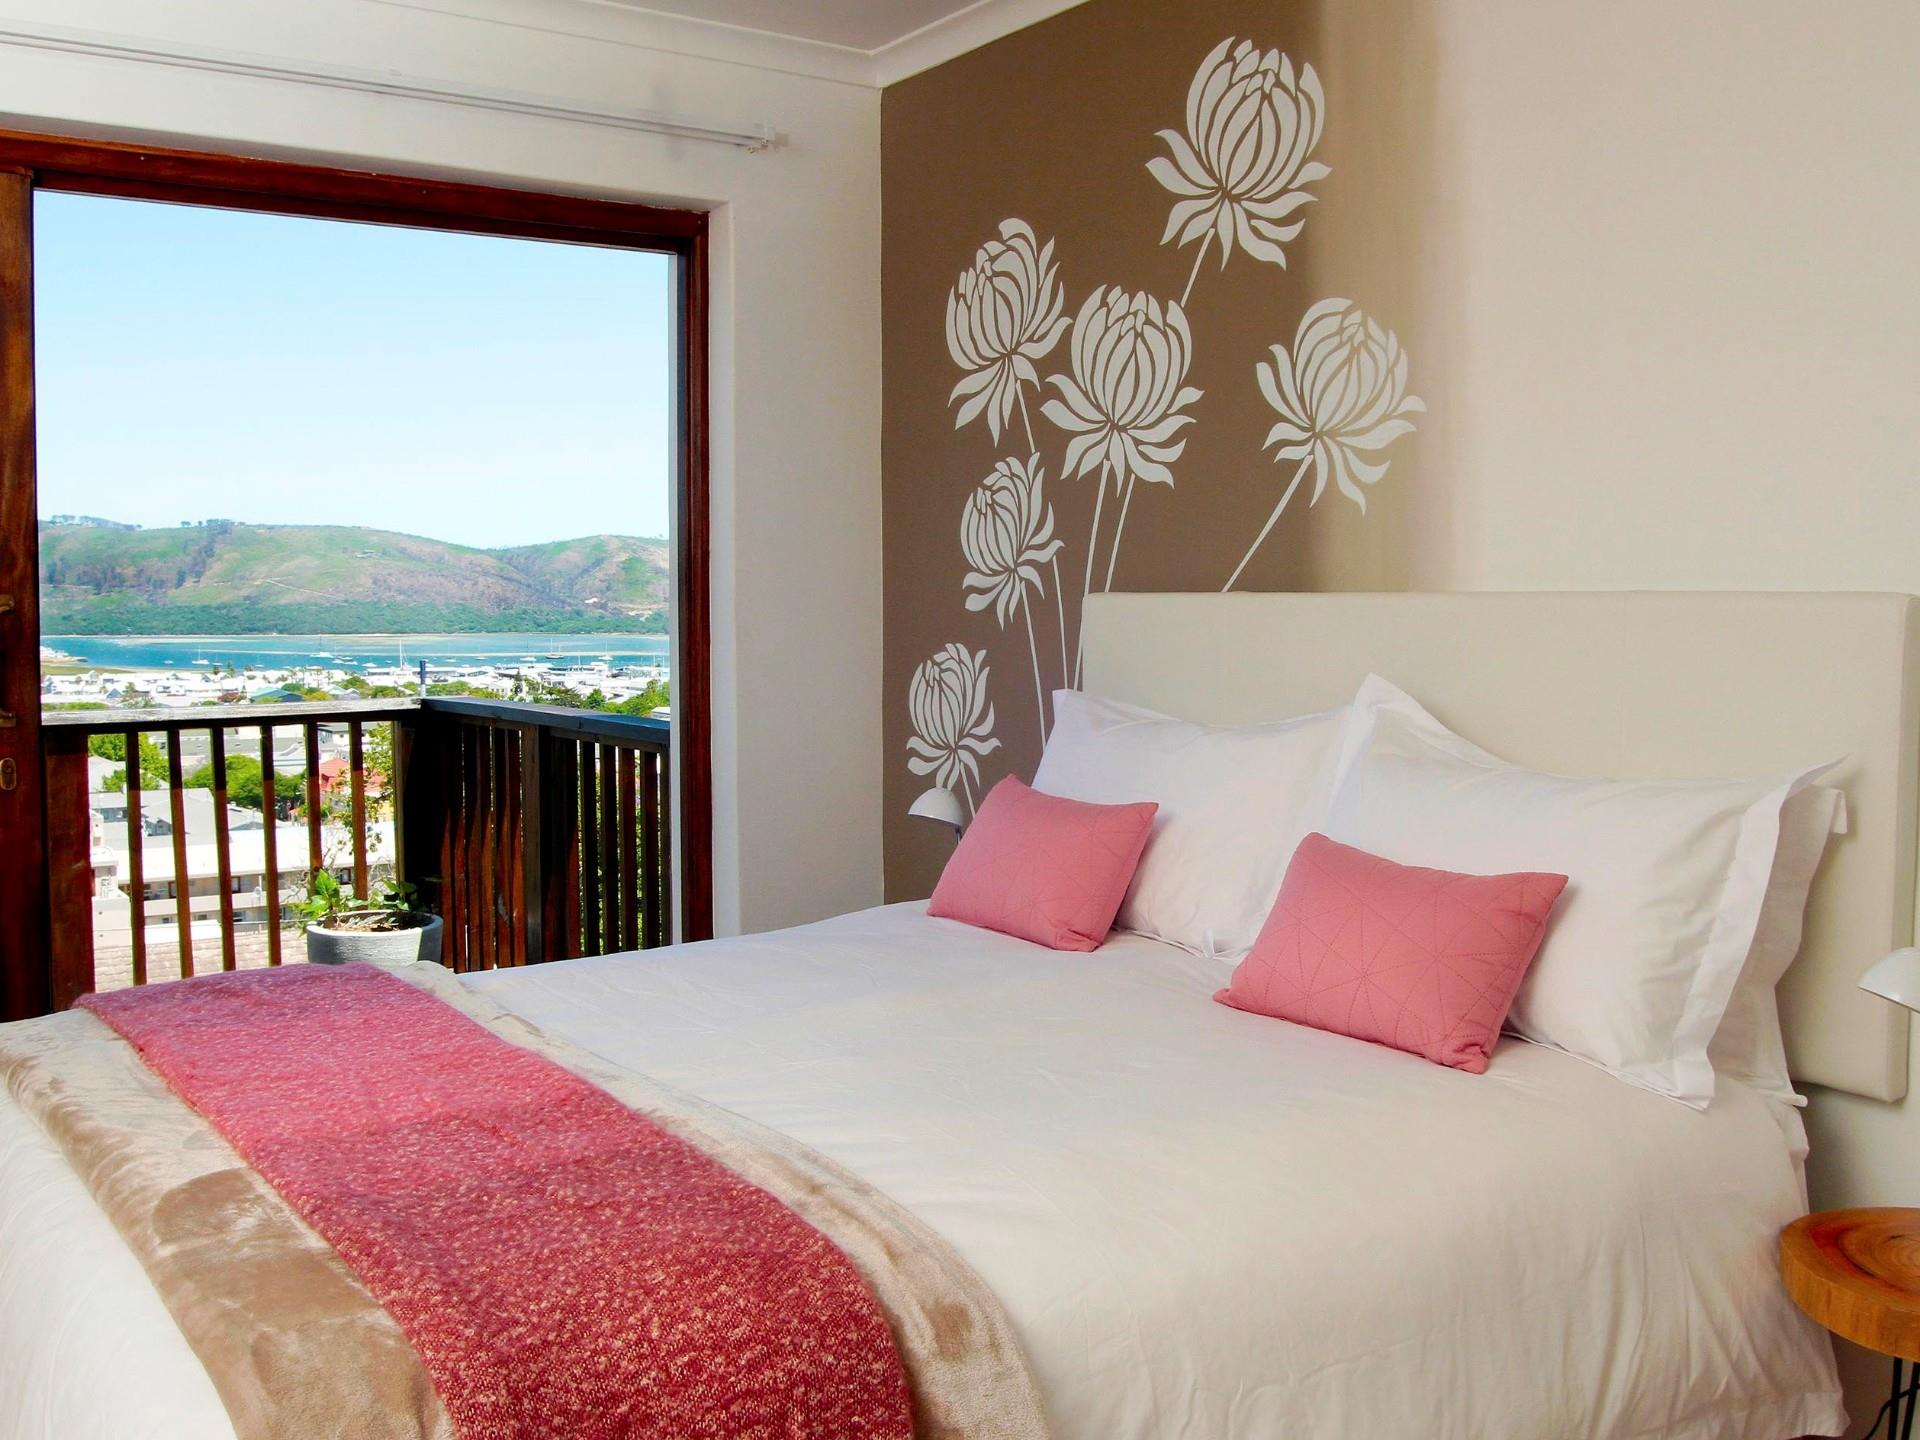 Leisure And Hotels in Knysna Central For Sale